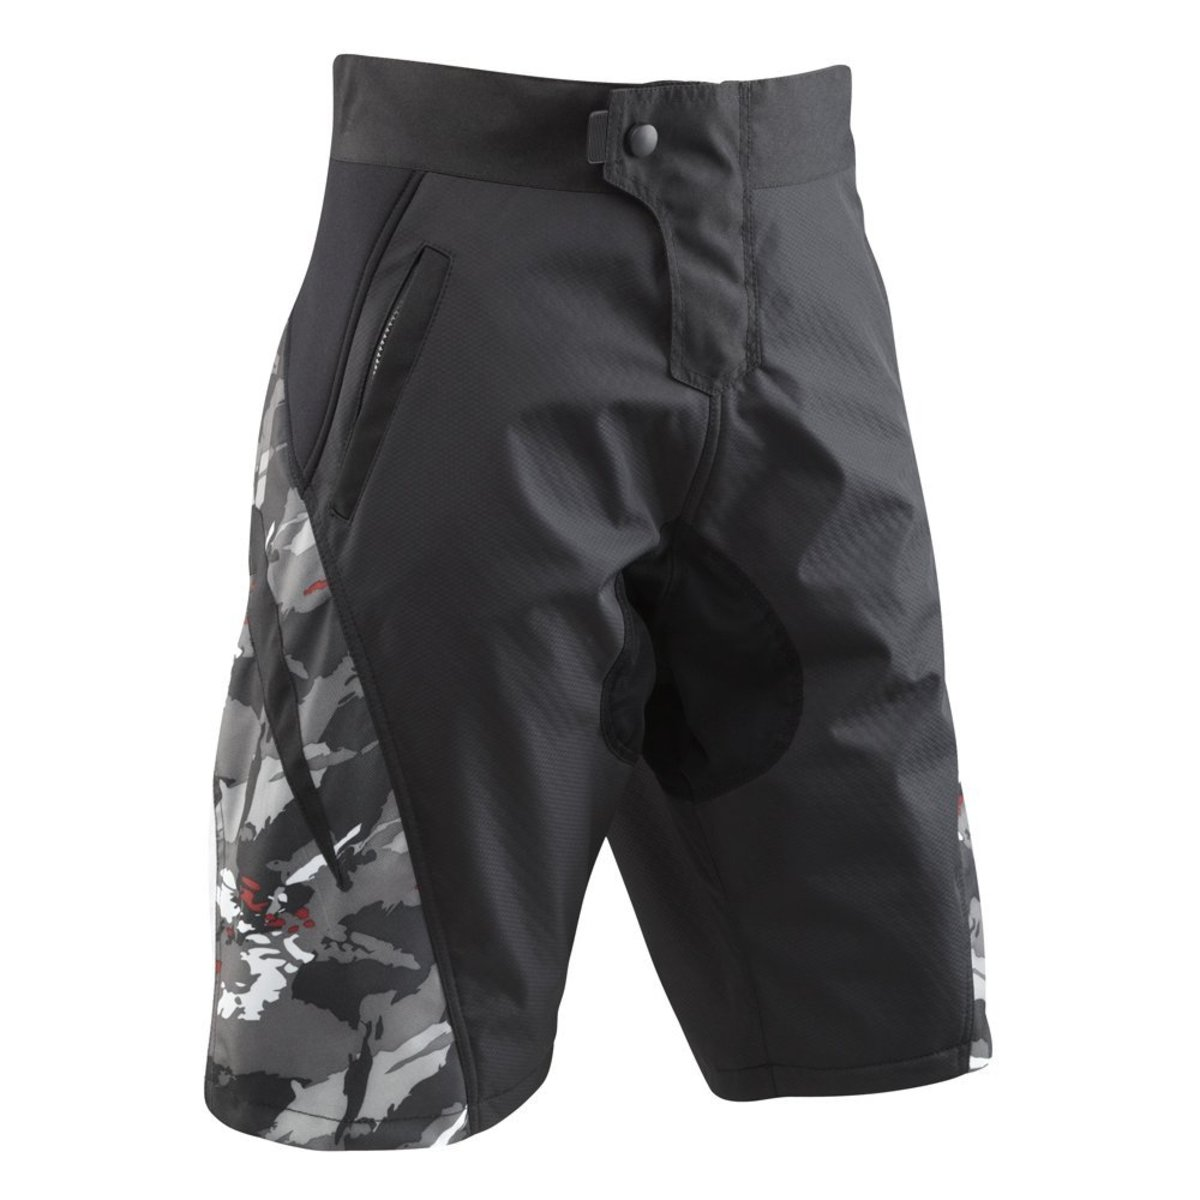 These Burn shorrts from Tenn offer a relaxed outer short with a specialist cycling related padded liner short for comfort without feeling self-concious.